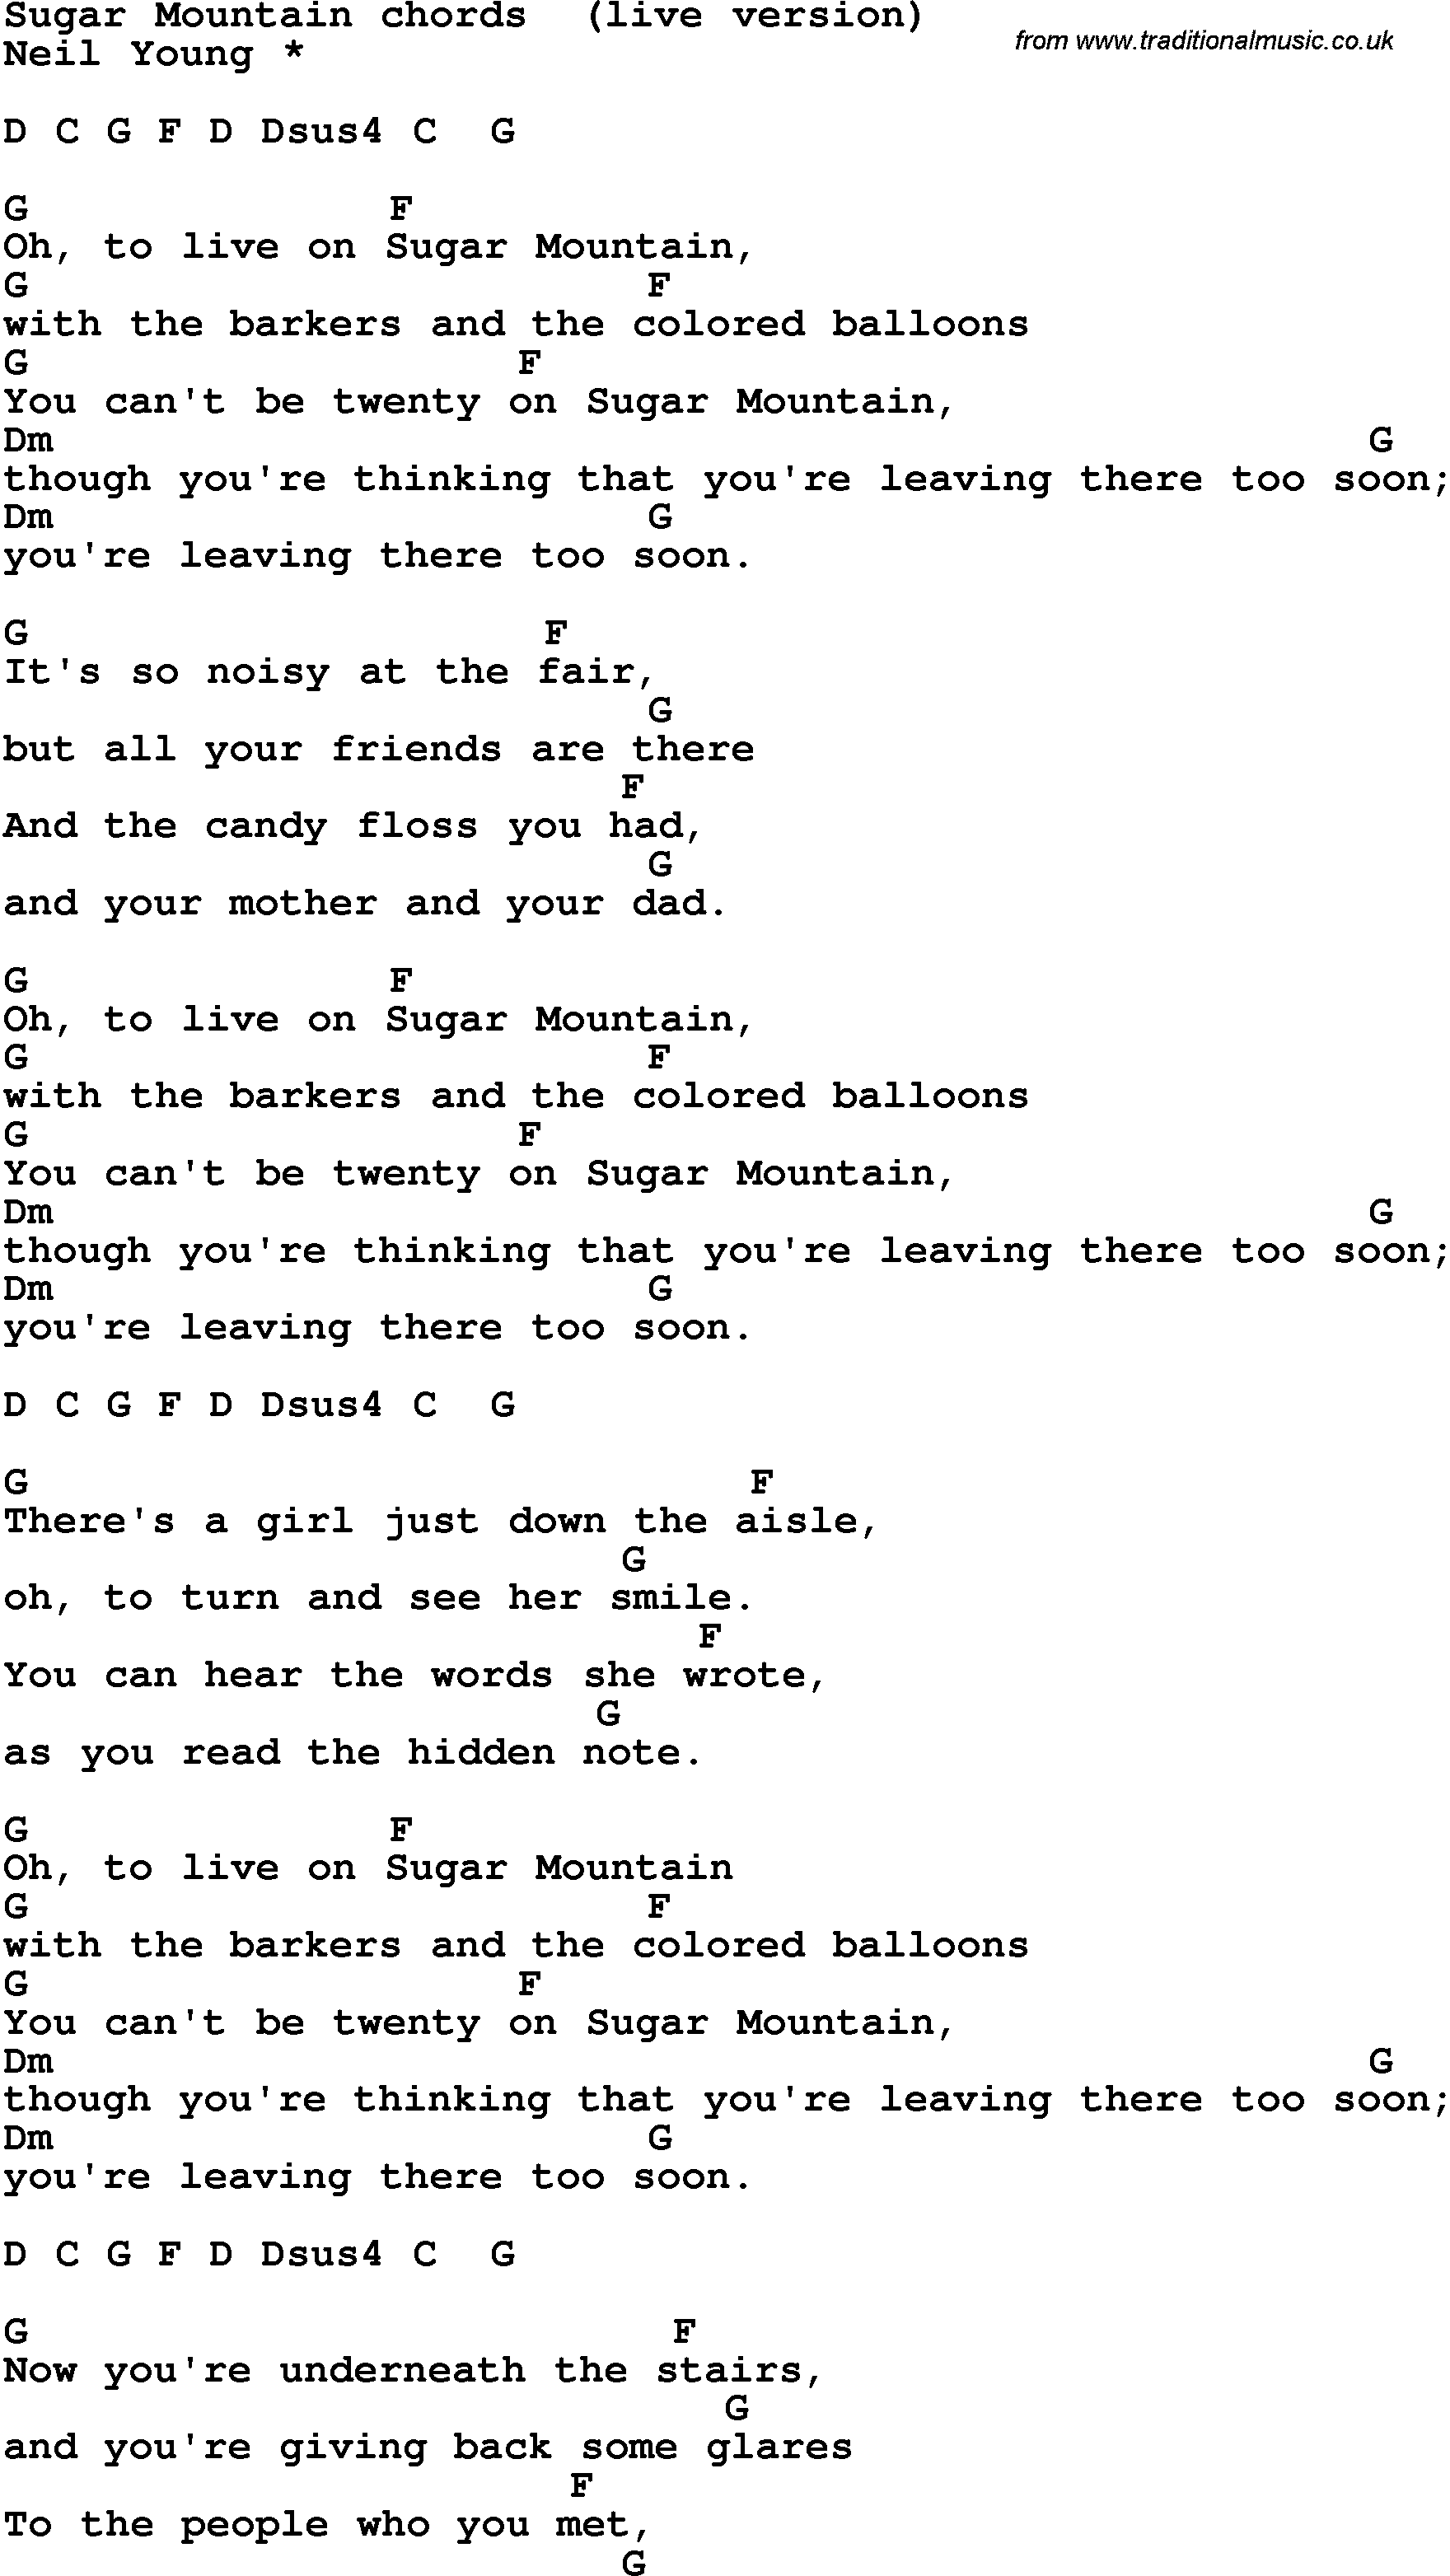 Song Lyrics With Guitar Chords For Sugar Mountain